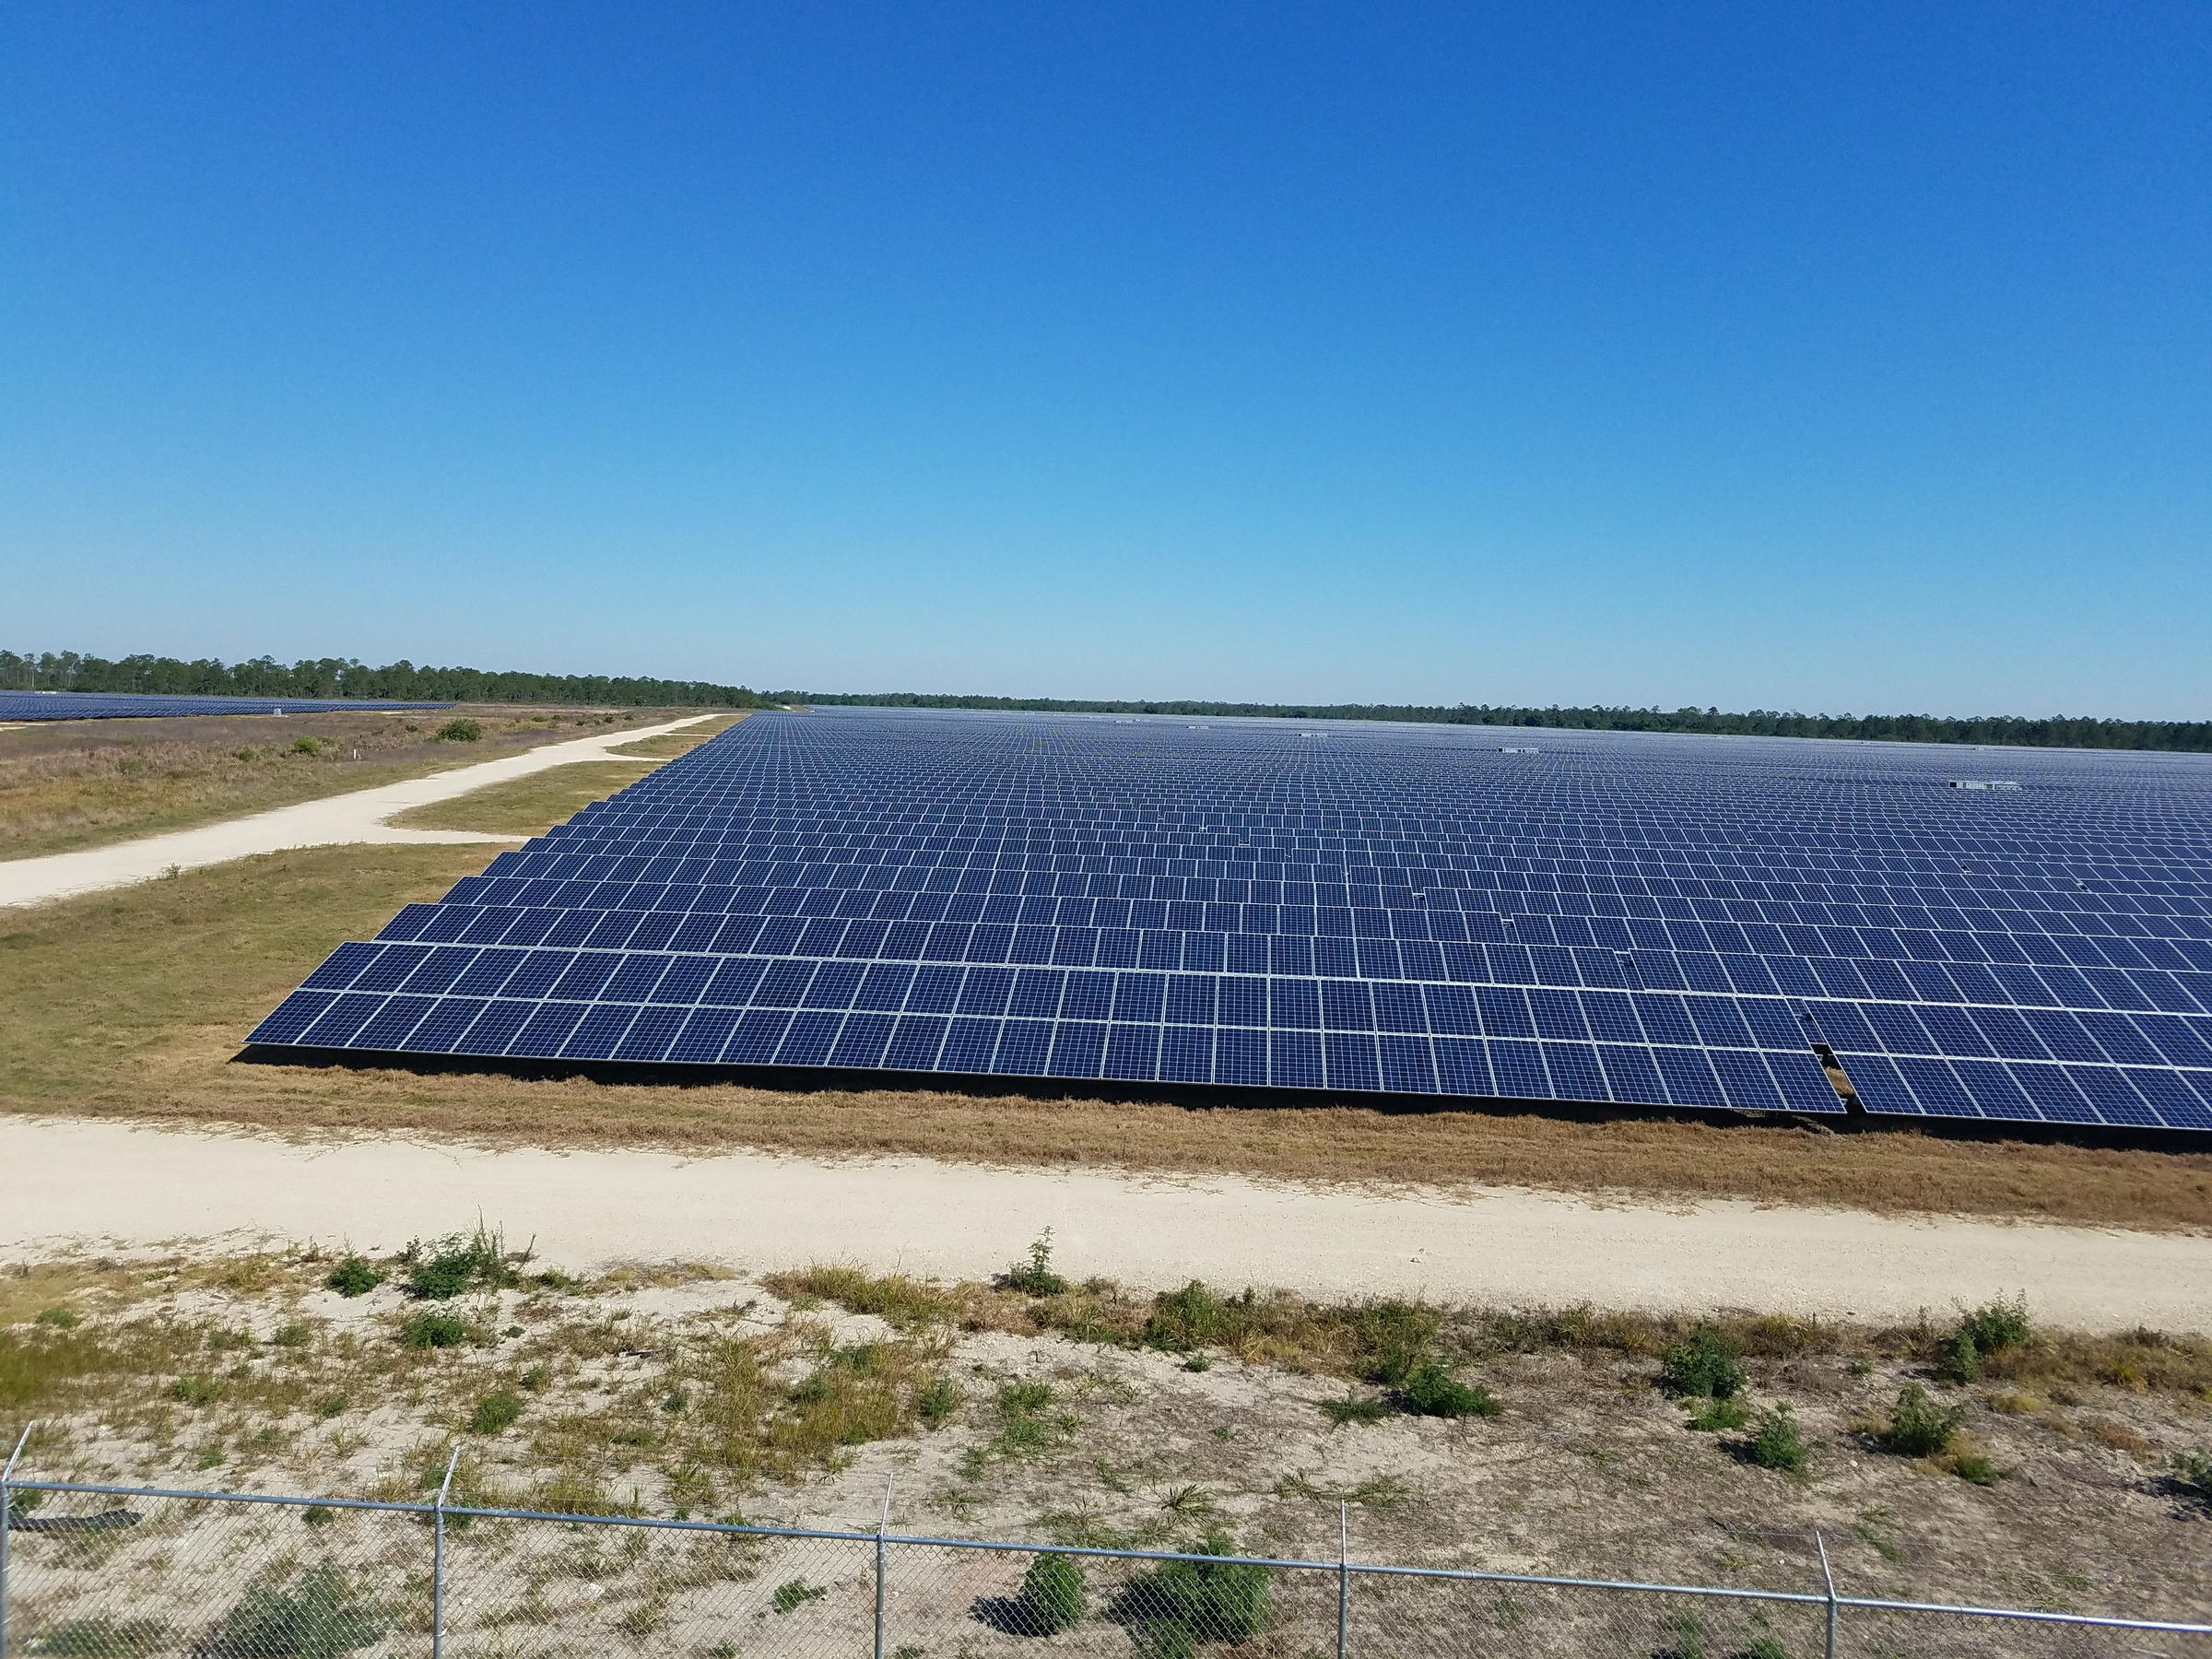 A Glimpse Of FPLu0027s 440 Acre Solar Field In Punta Gorda.